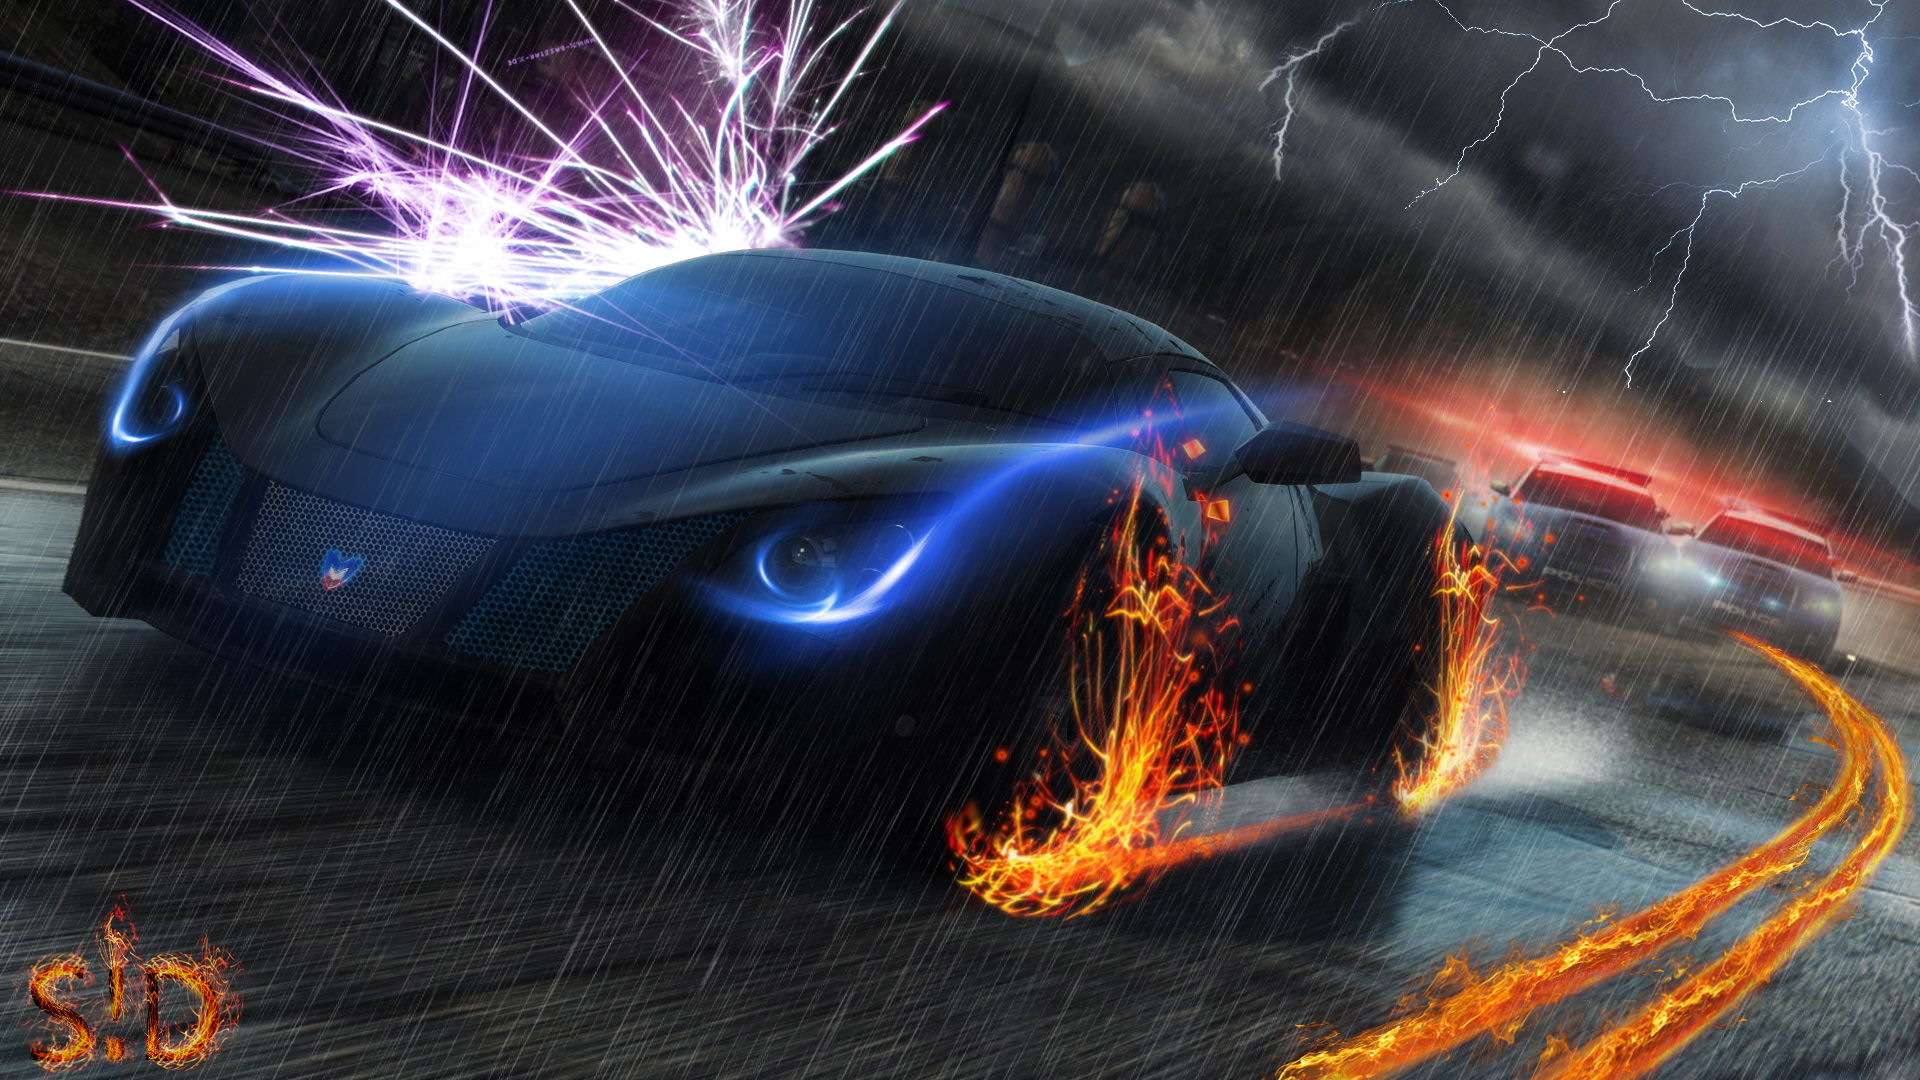 Need for speed most wanted wallpapers pictures images for Need for speed wallpaper